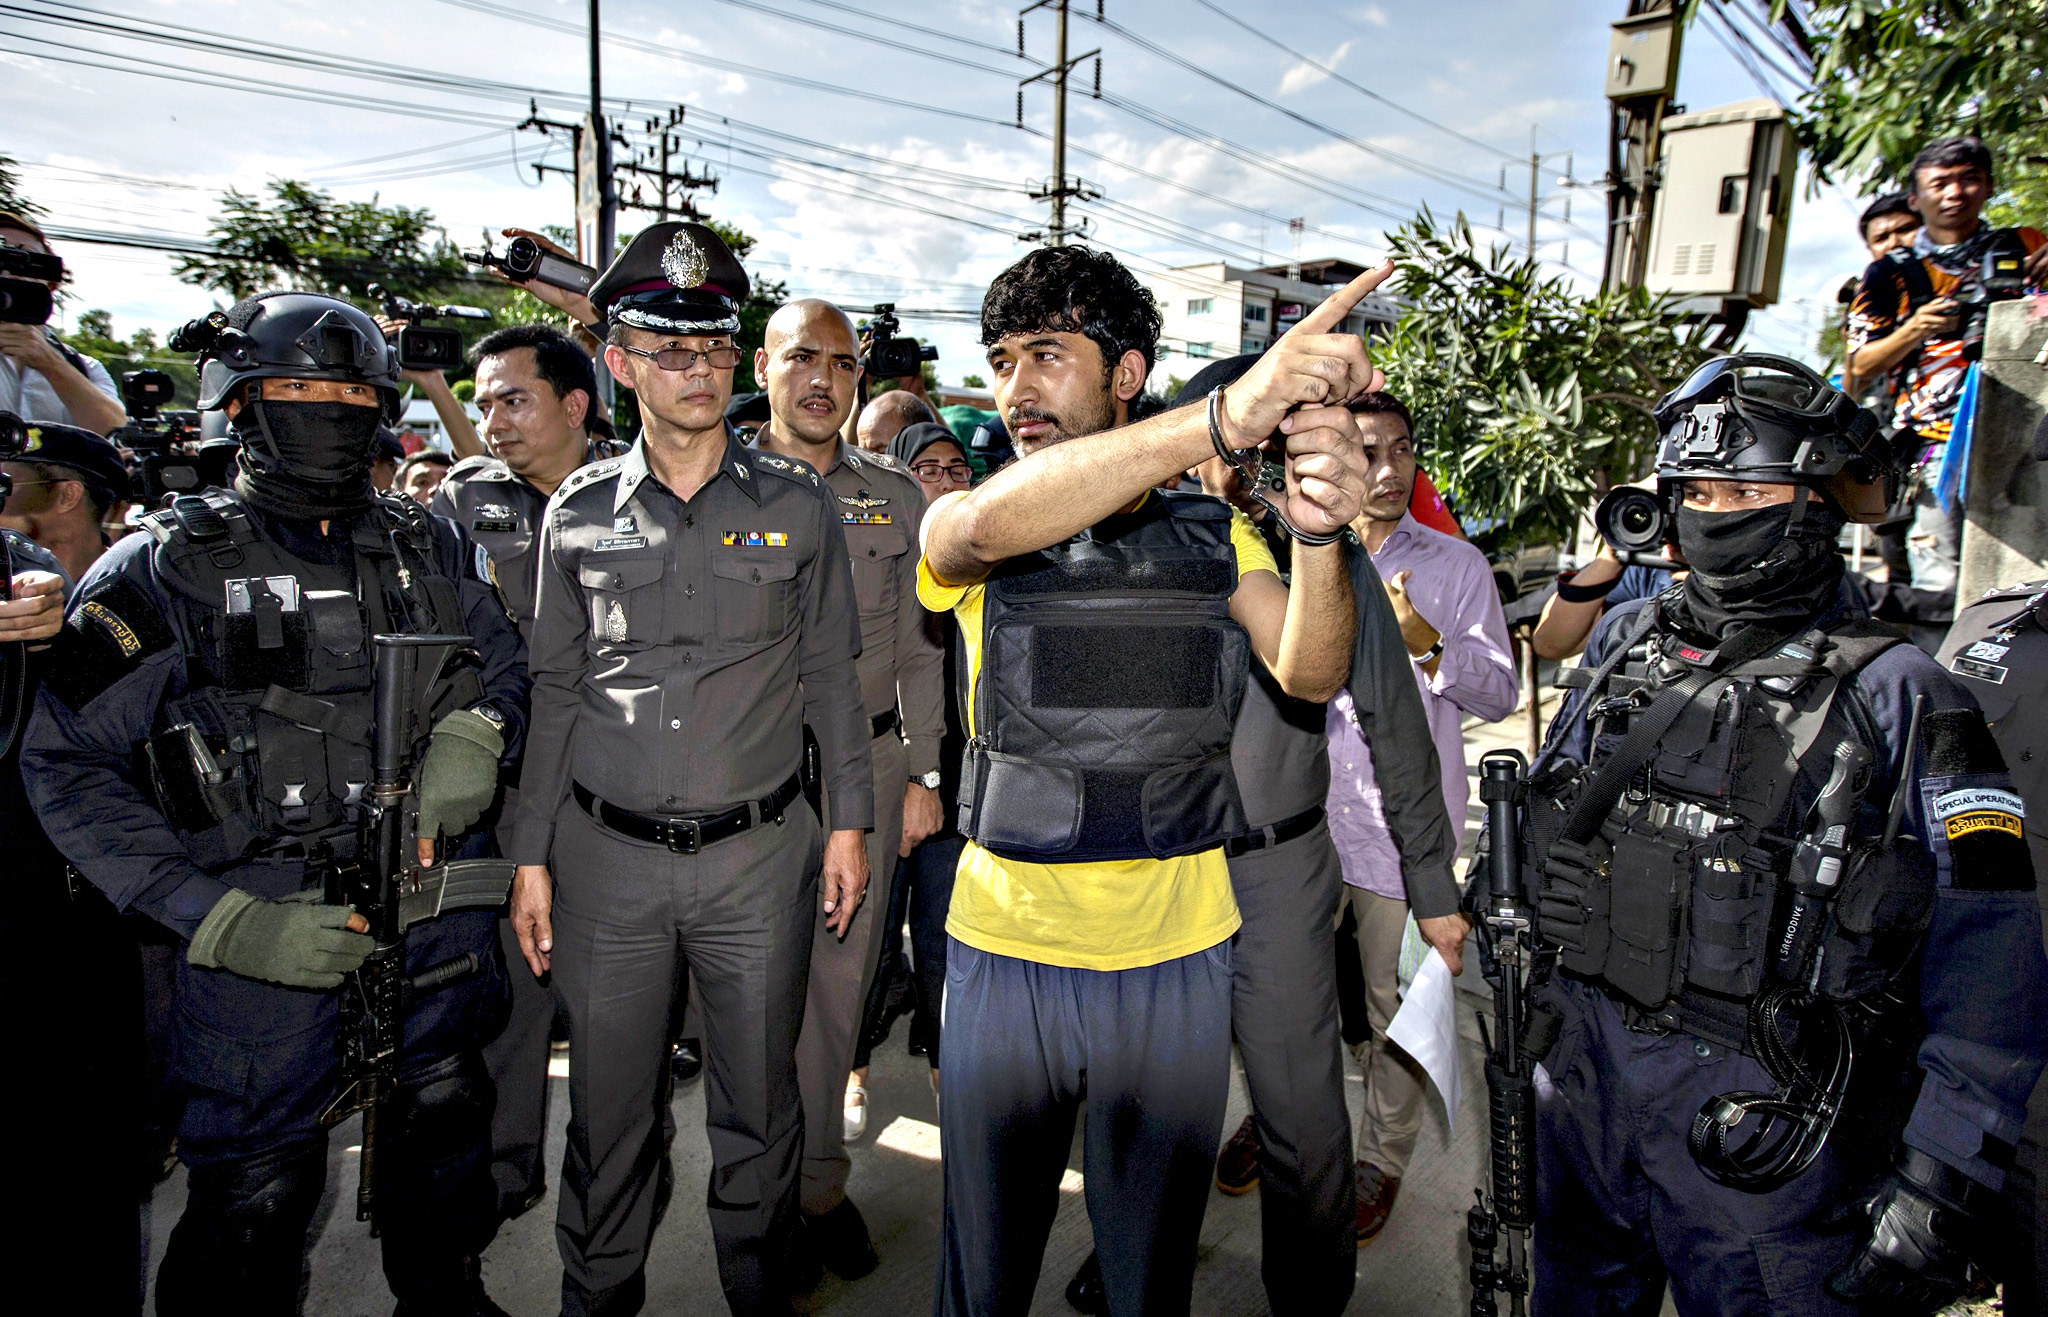 A suspect of the Aug. 17 Bangkok blast who was arrested last week near the border with Cambodia points as he stands next to police officers during a crime re-enactment at an apartment, where police raided and found possible bomb-making materials last month, in Nongjok district, on the outskirts of Bangkok, Thailand, September 8, 2015